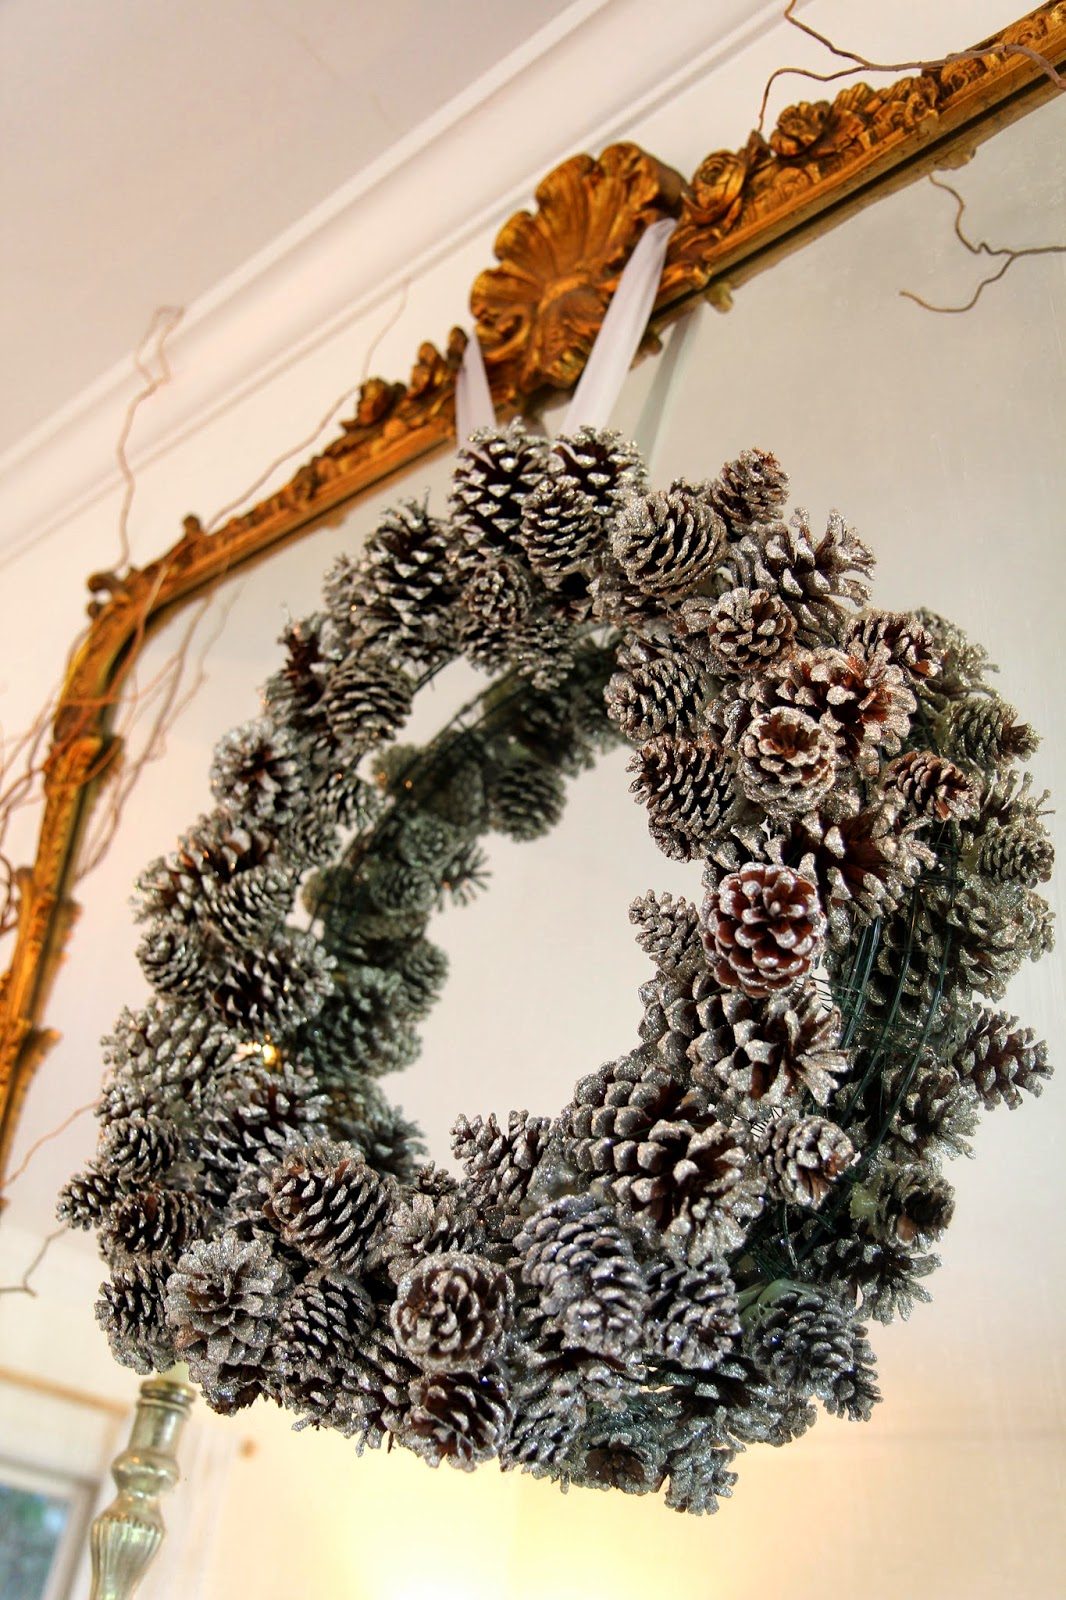 Glittered Pinecone Wreath on Mirror